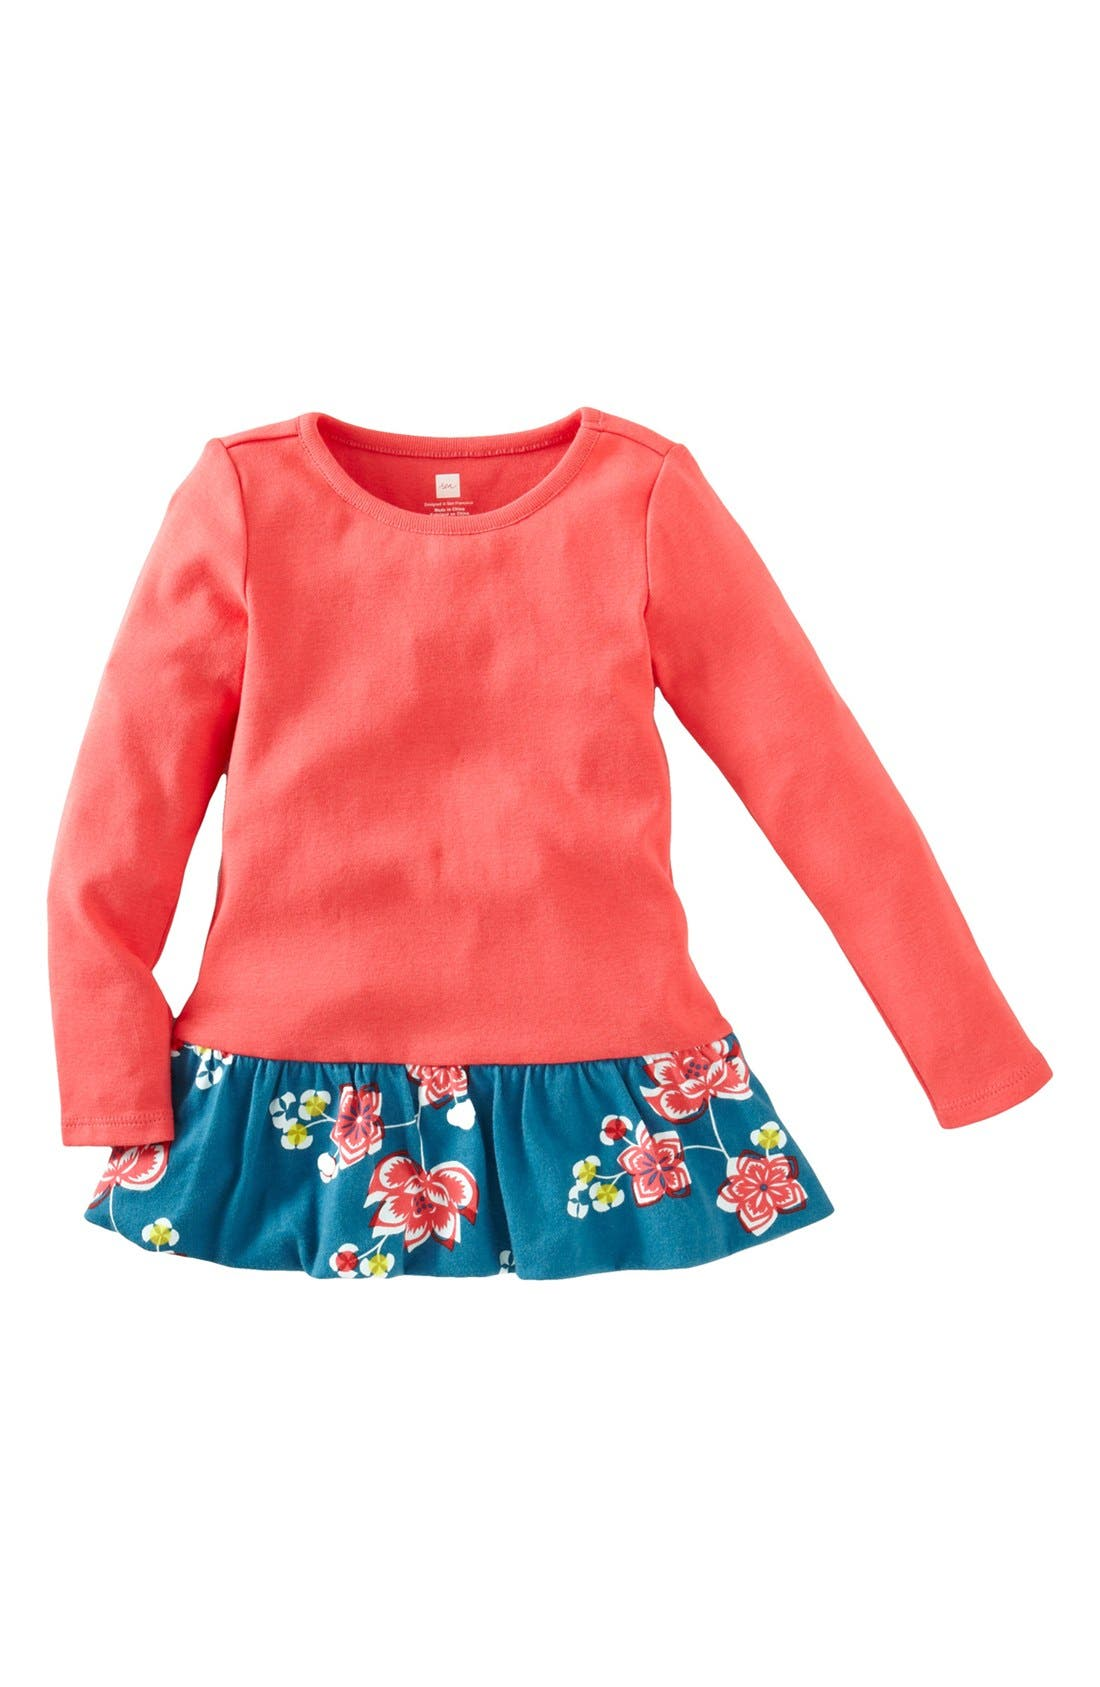 Alternate Image 1 Selected - Tea Collection 'Jianzhi' Bubble Top (Toddler Girls)